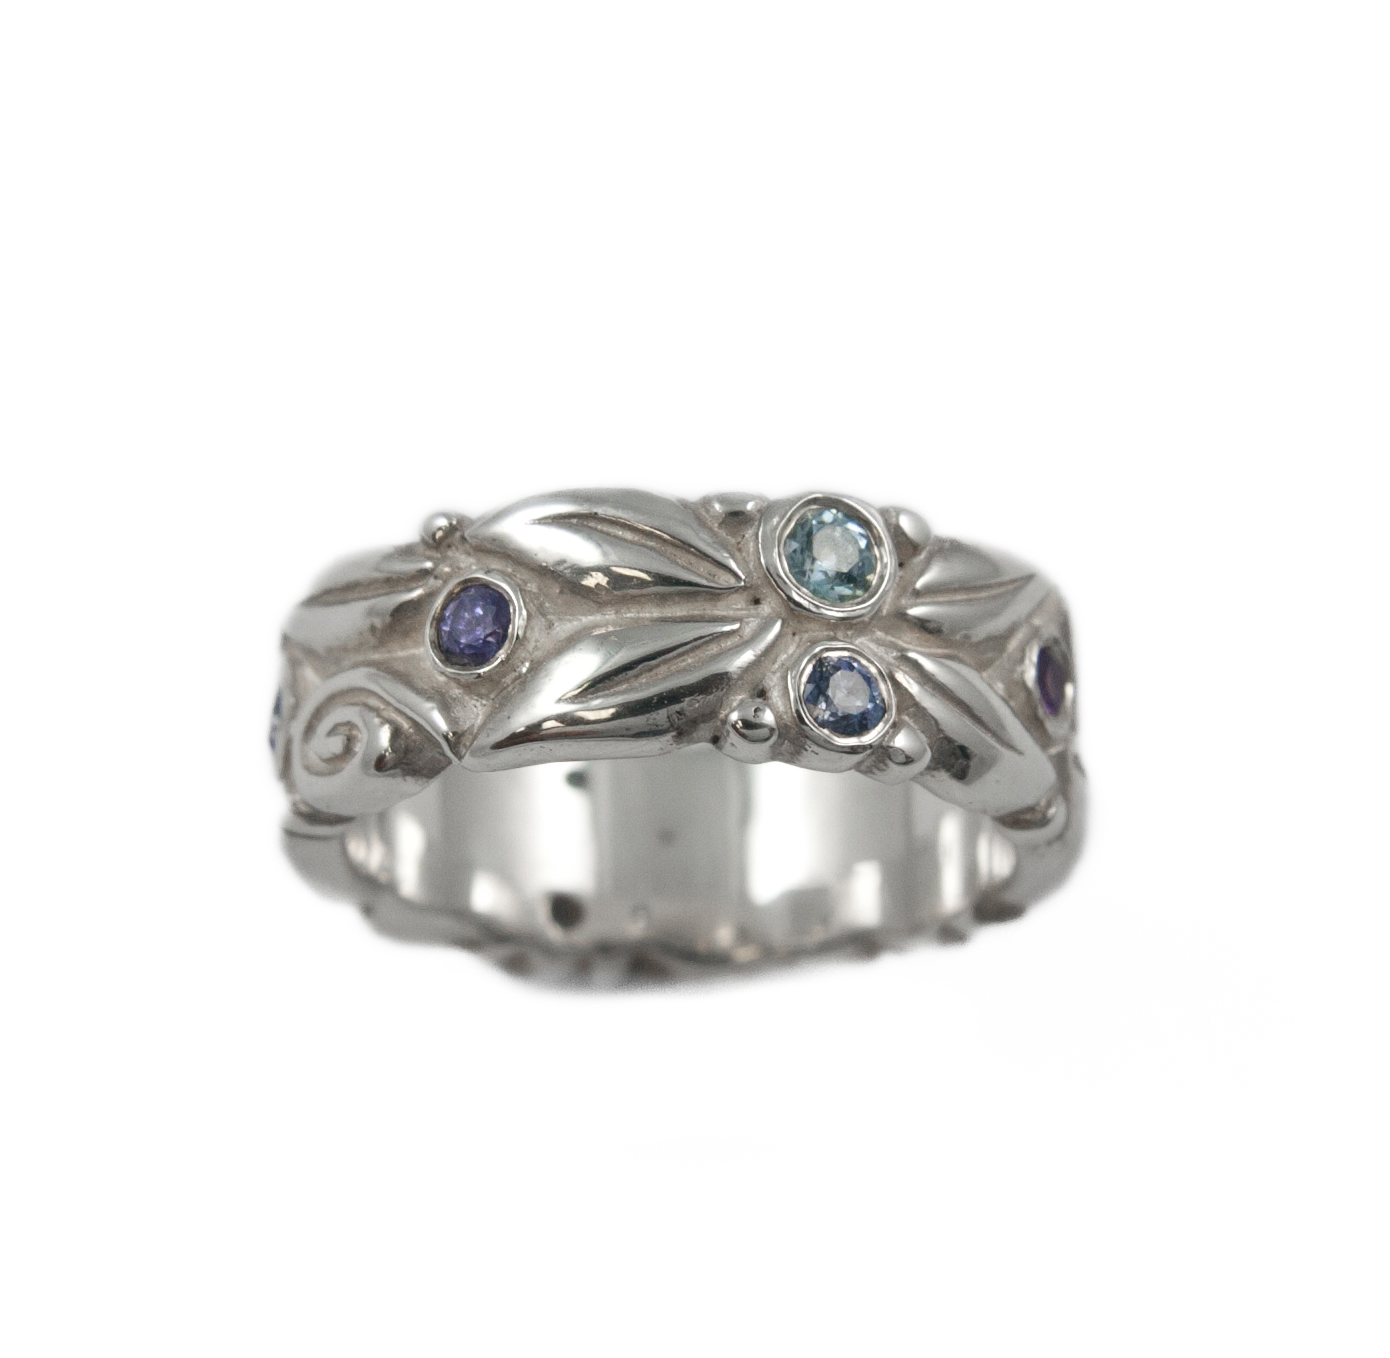 WEDDING ss carved leaves band blue stones EDITED.jpg